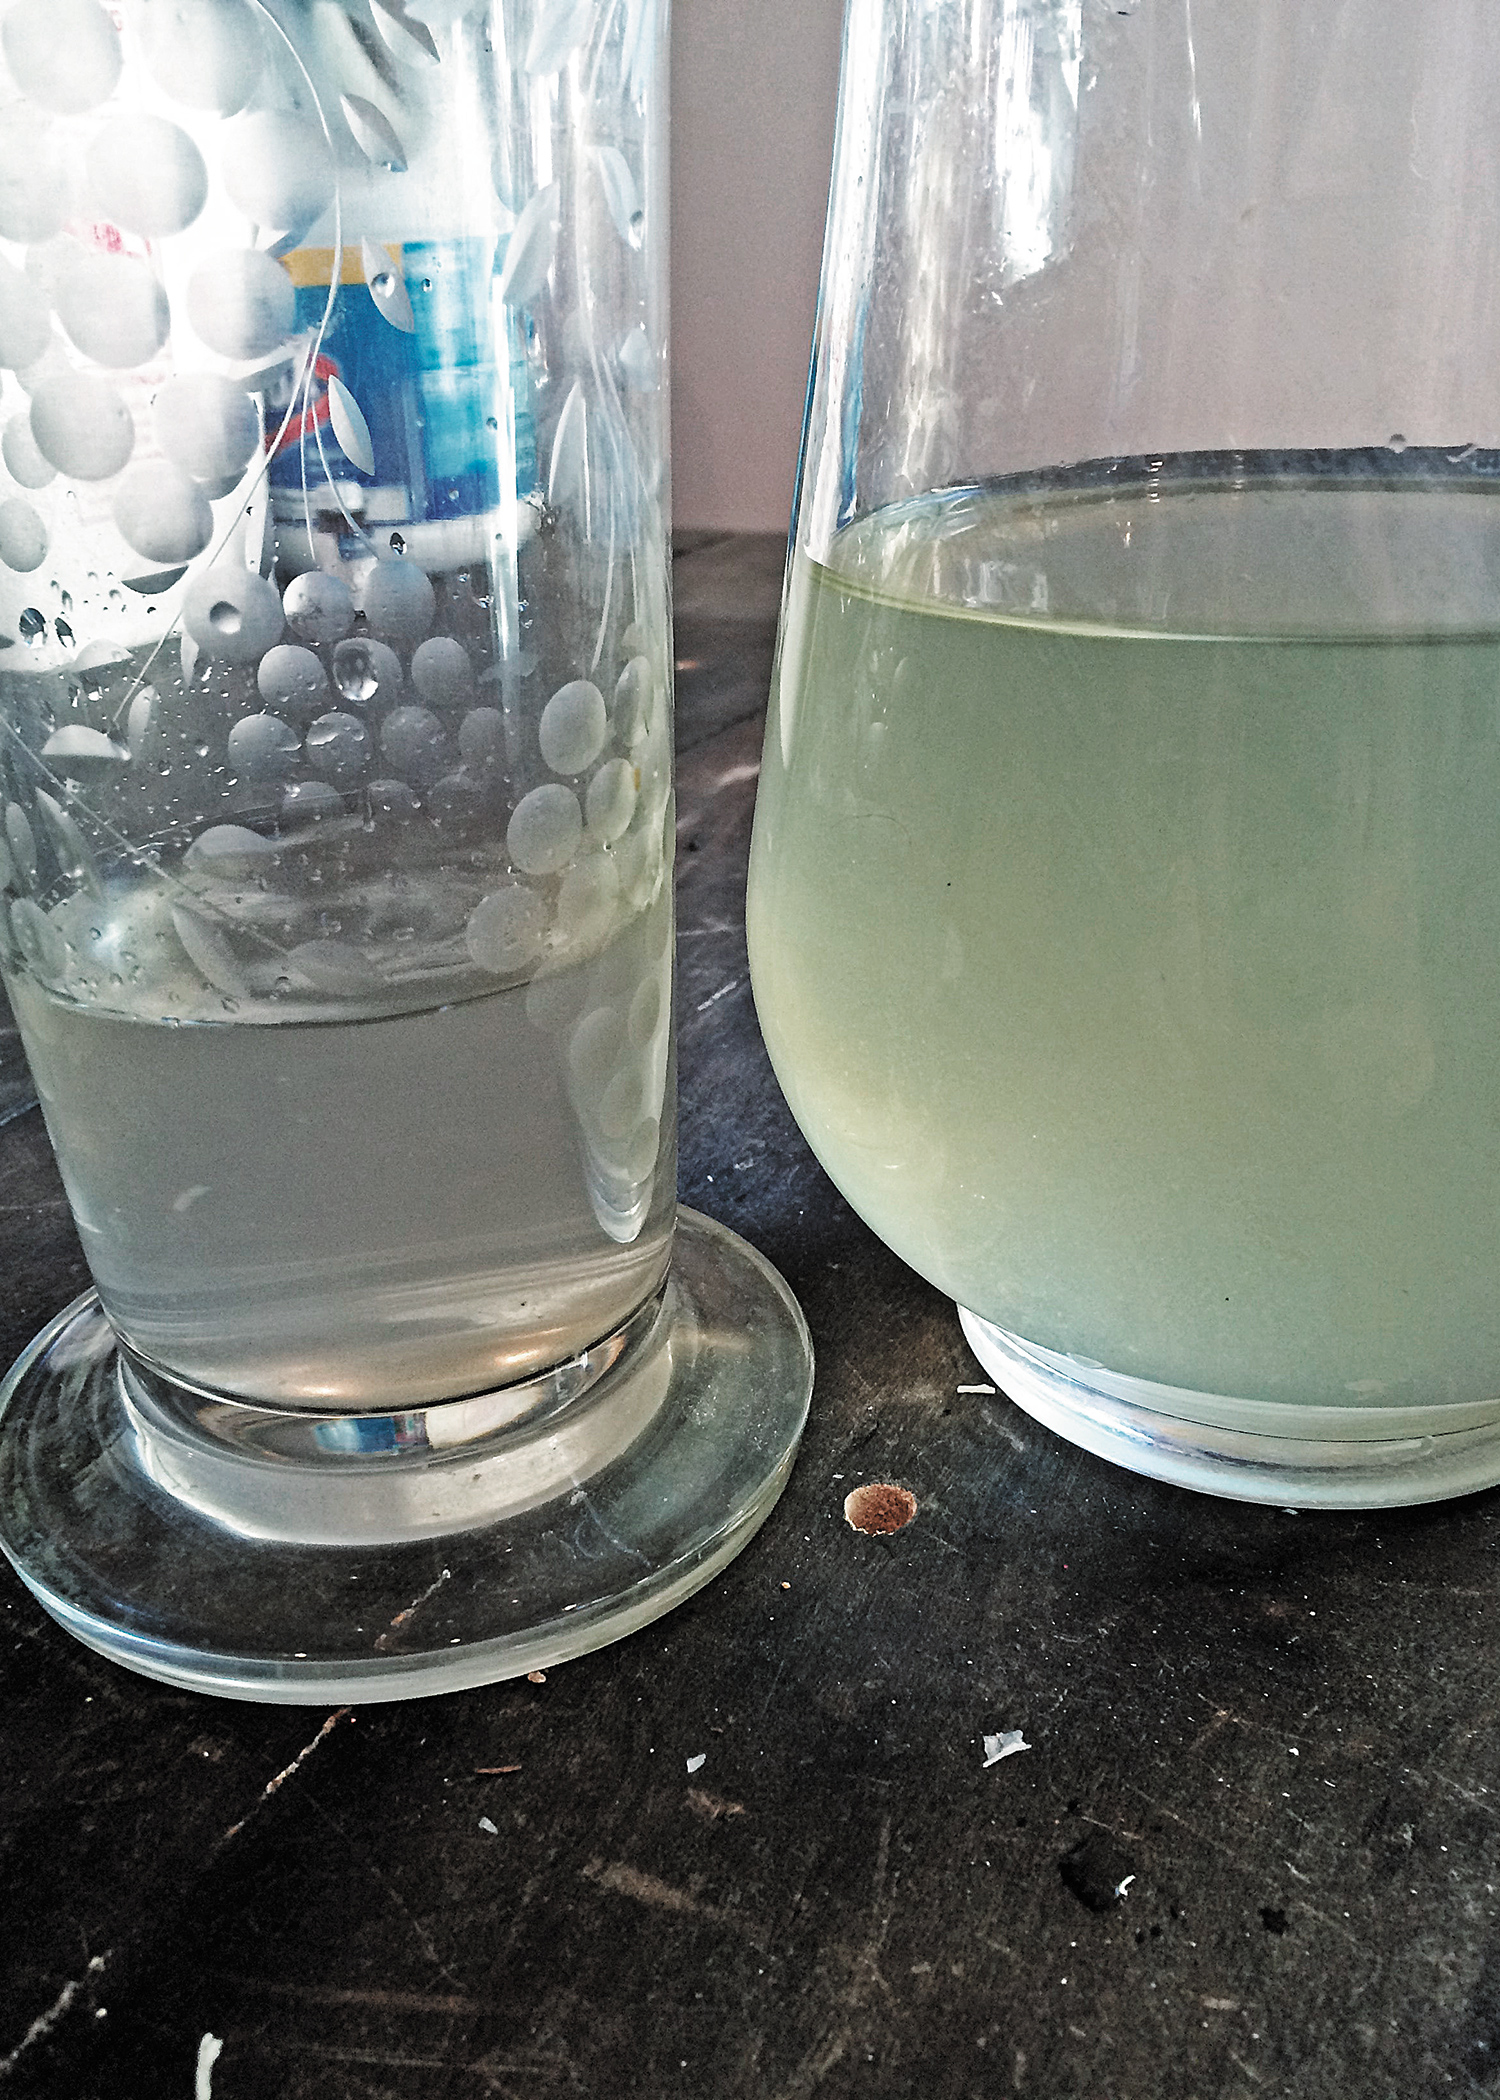 Improvised Water Filters Not a Drop to Drink